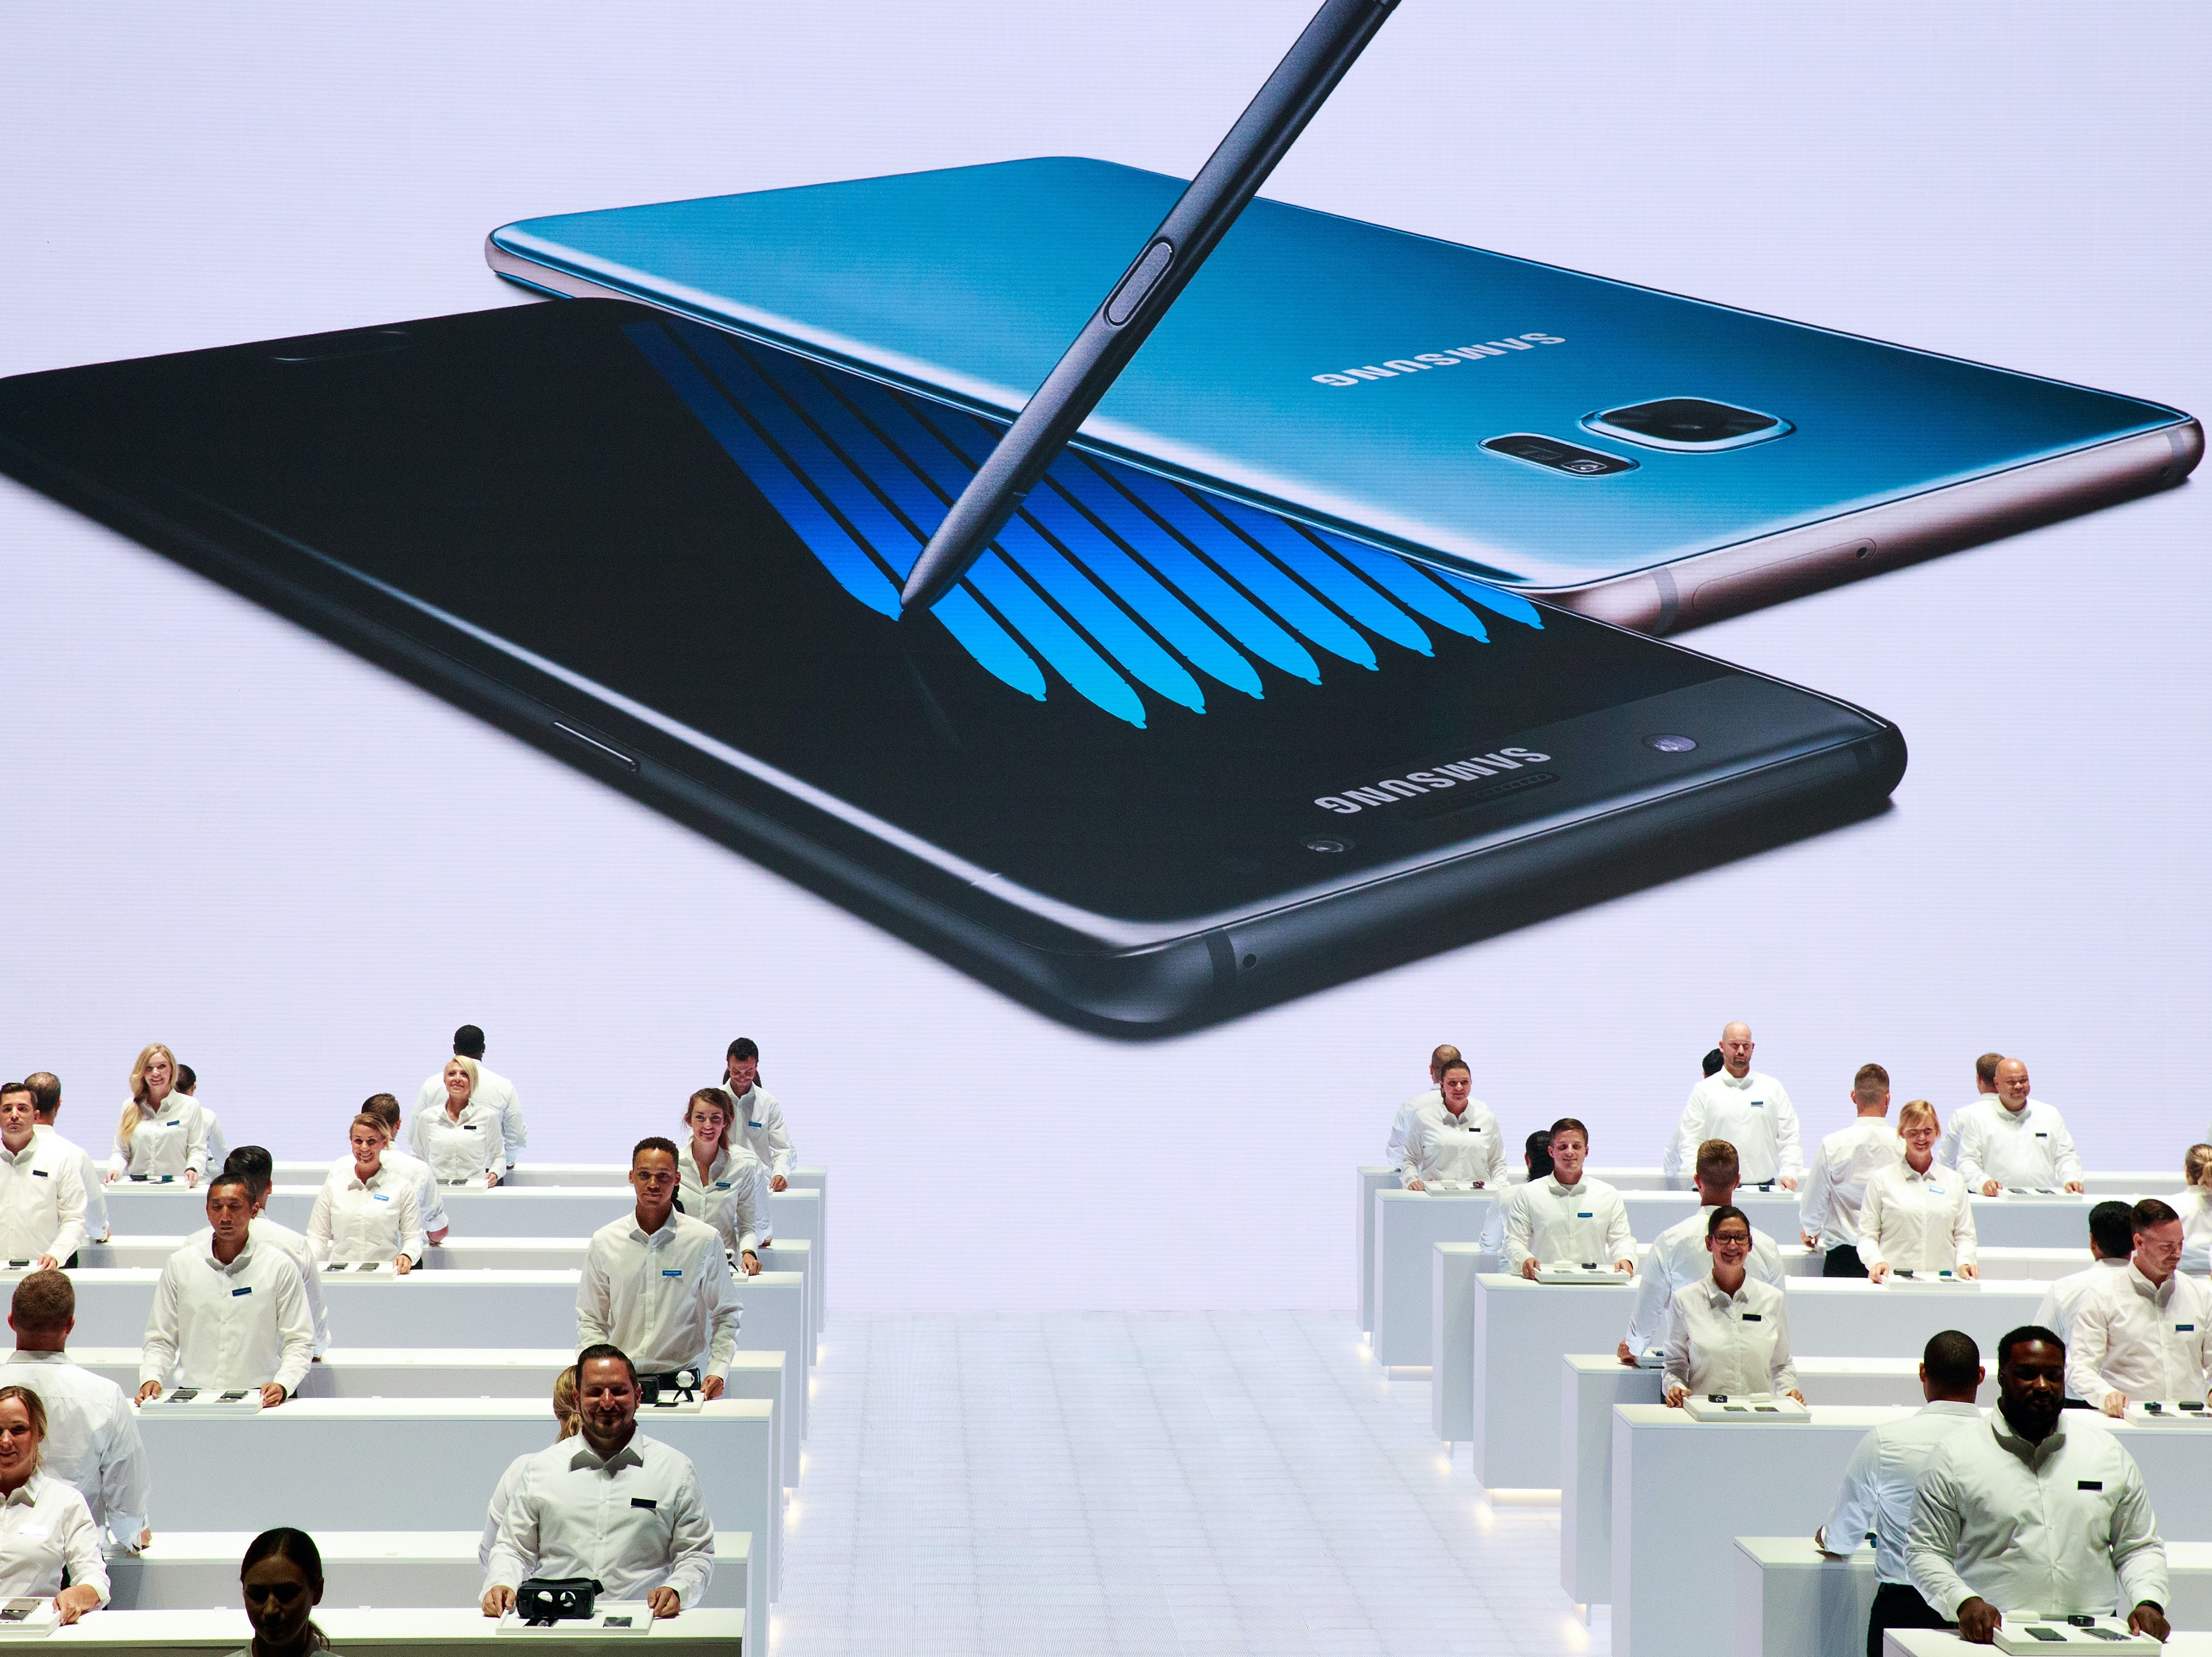 NEW YORK, NY - AUGUST 2: Samsung employees stand at display tables during a launch event for the Samsung Galaxy Note 7 at the Hammerstein Ballroom, August 2, 2016 in New York City. The stylus equipped smartphone will be available starting August 19, with preorders starting August 3. (Photo by Drew Angerer/Getty Images)